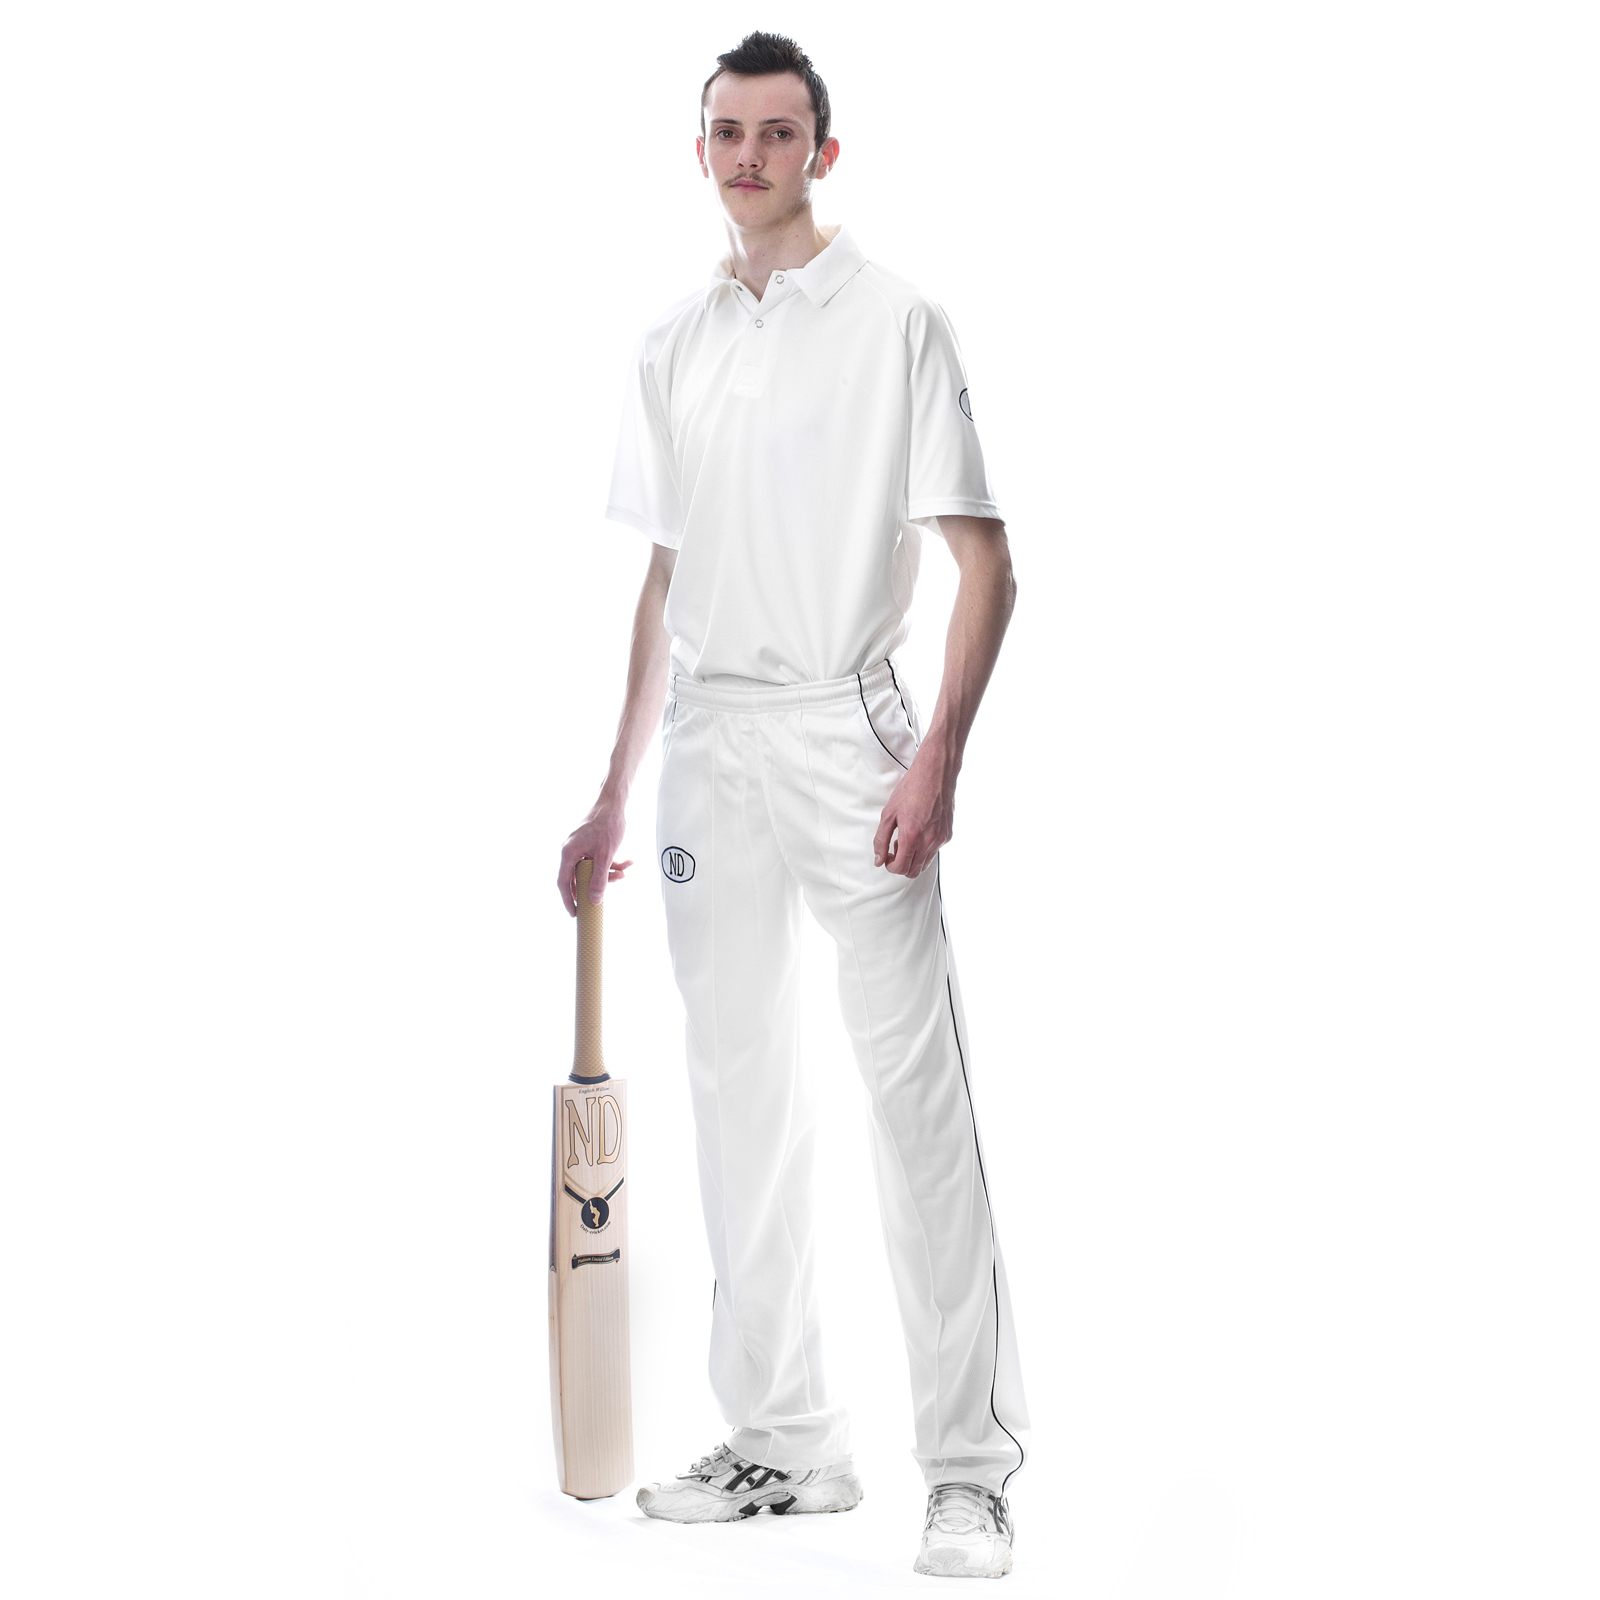 New 2015 Cricket Kit Players Outfit Whites Shirt Trousers Combo Size 2xsb Xl Ebay